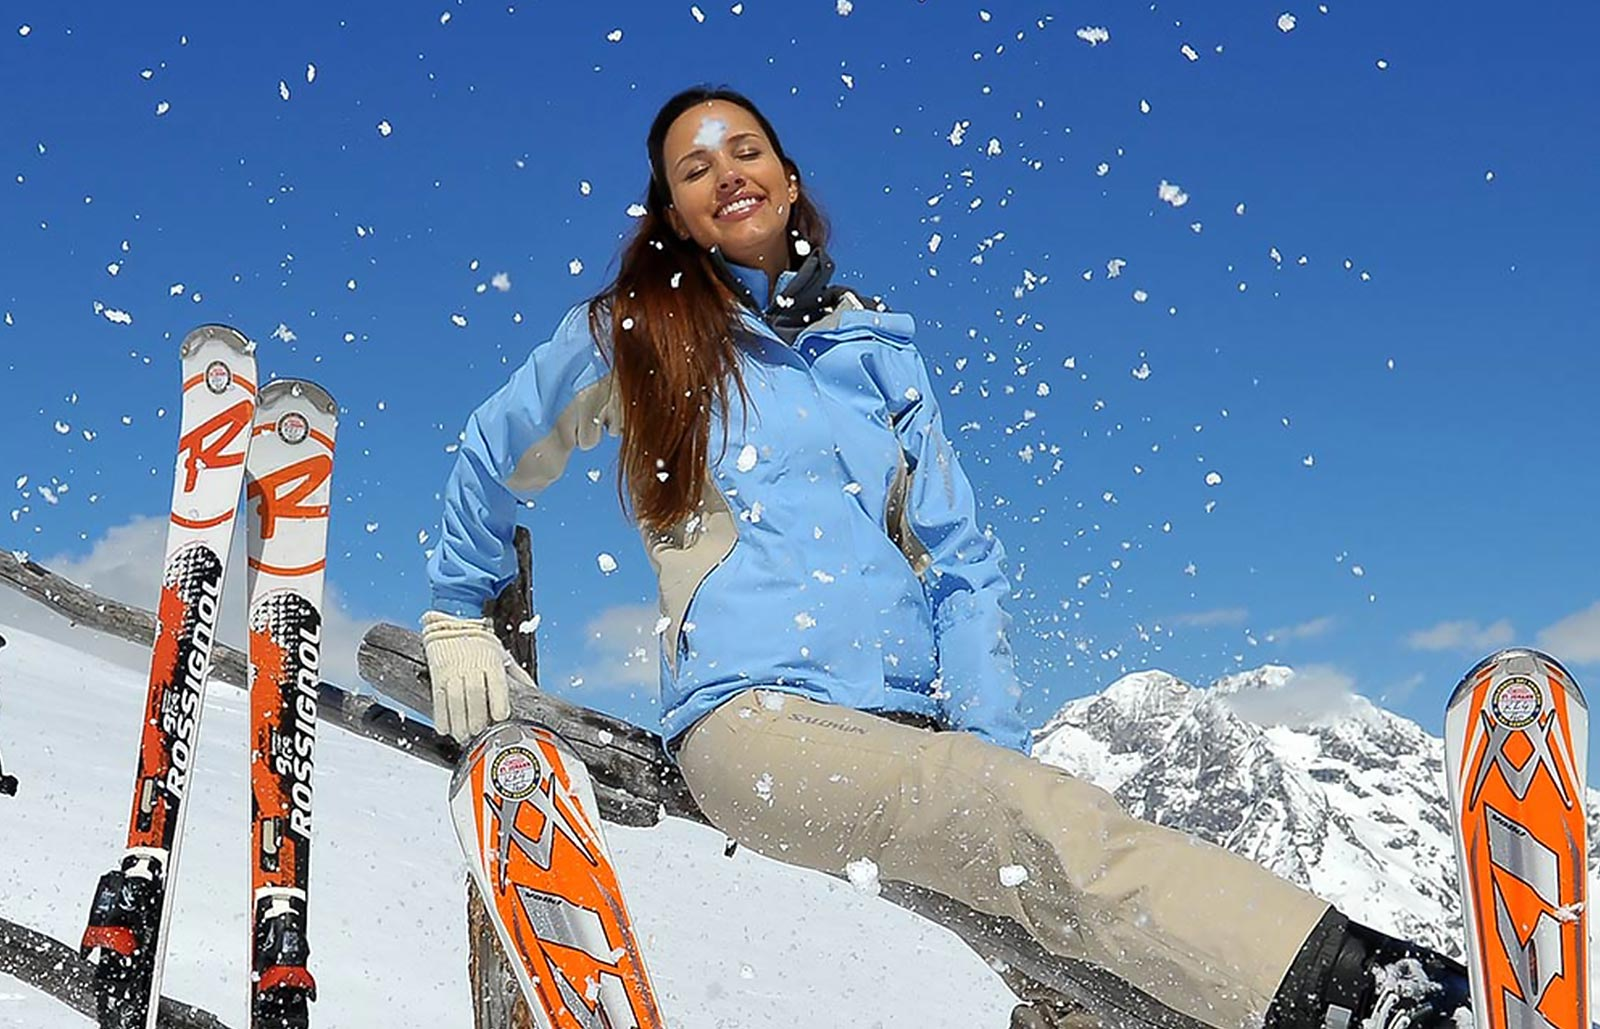 A young lady enjoys the sun on the piste with her skis